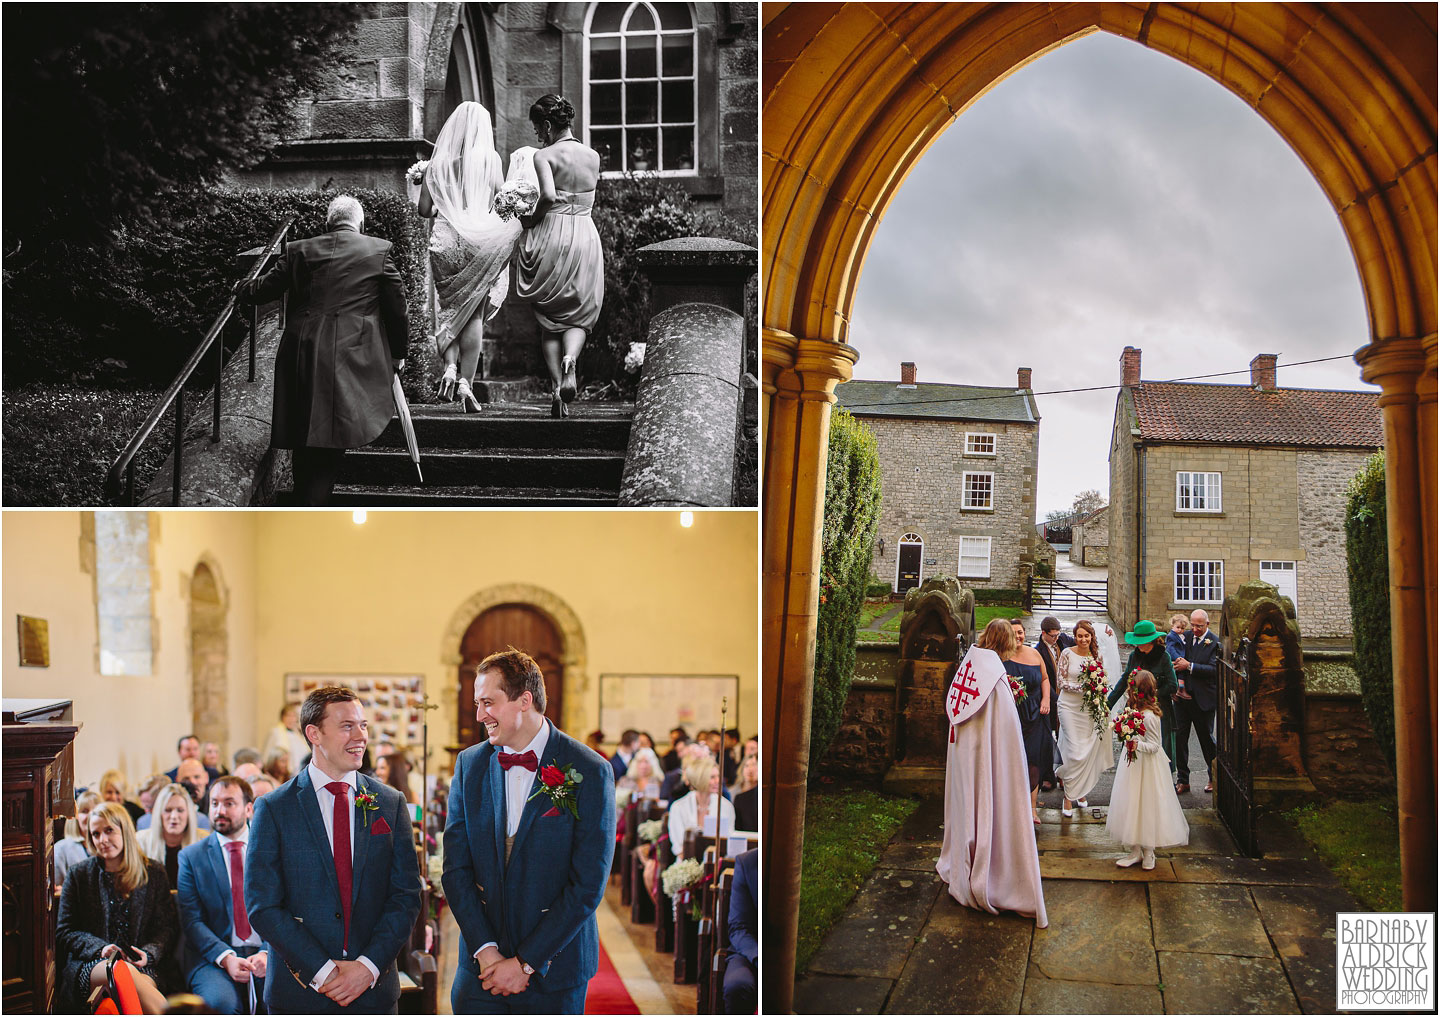 The arrival of the bride at a church in Denton, Amazing Yorkshire Wedding Photos, Best Yorkshire Wedding Photos 2018